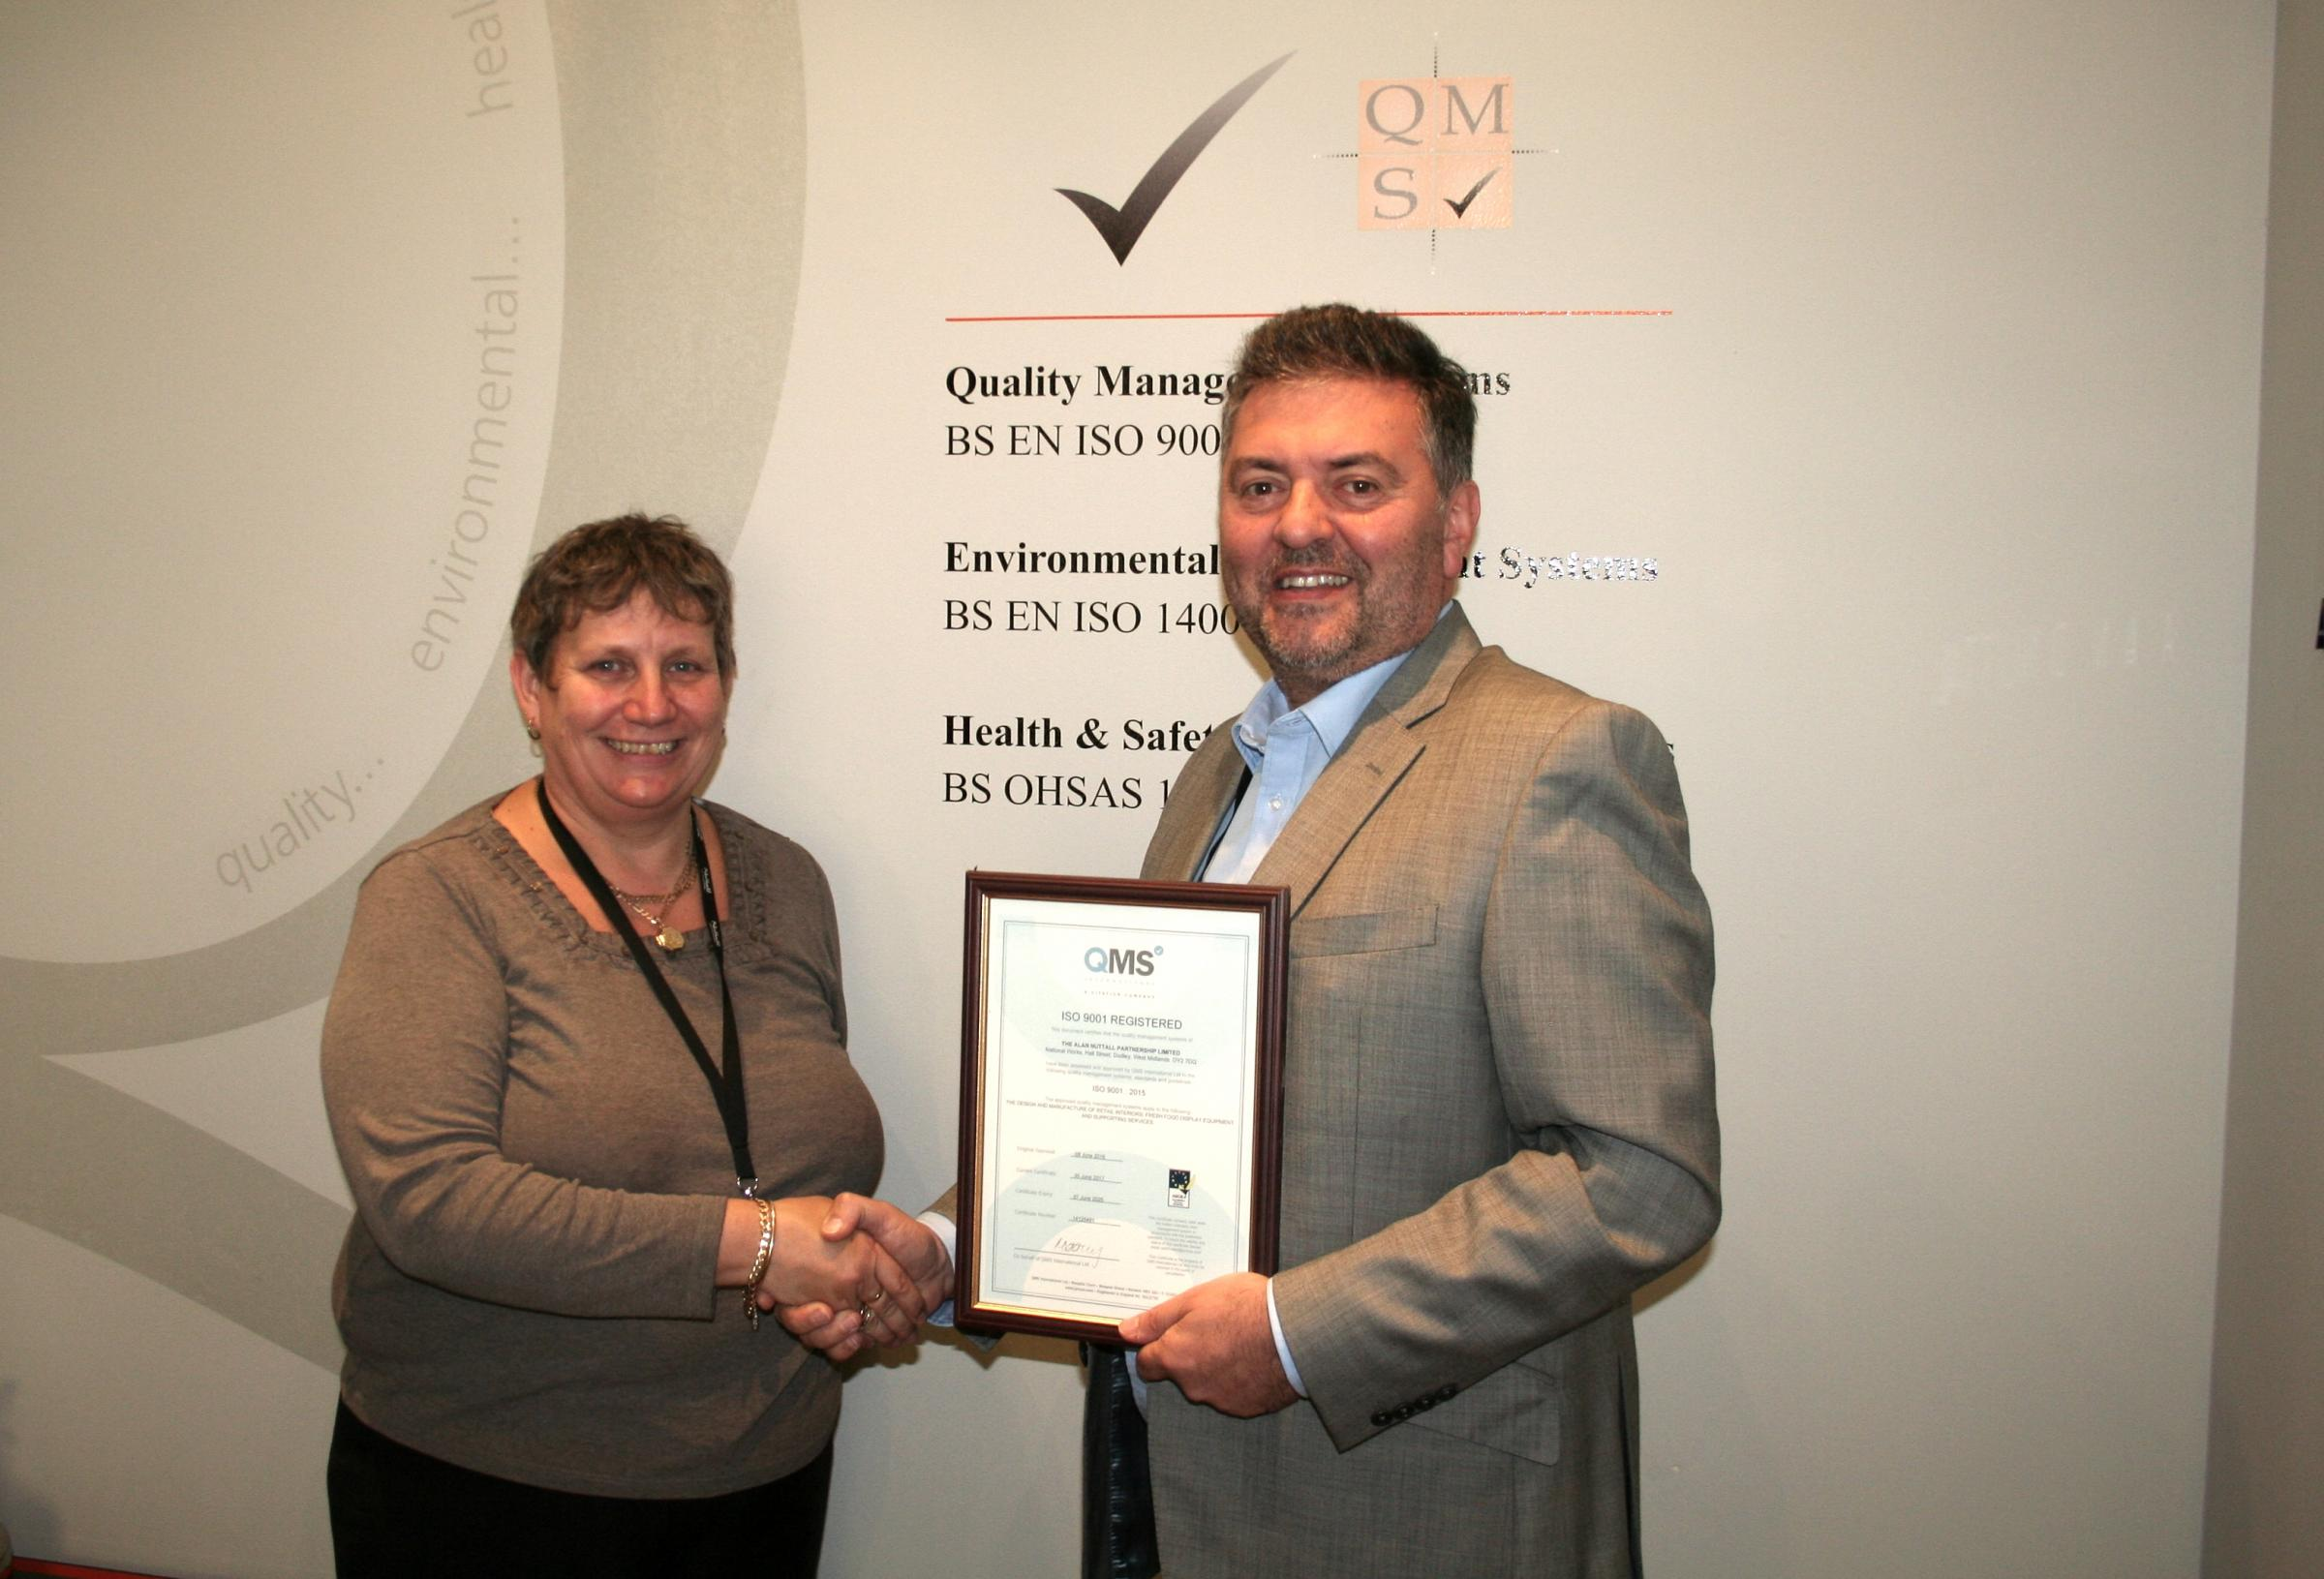 L-R: Jane Peevor-Evans, quality manager and Nino Calandra, managing director, celebrate the achievement